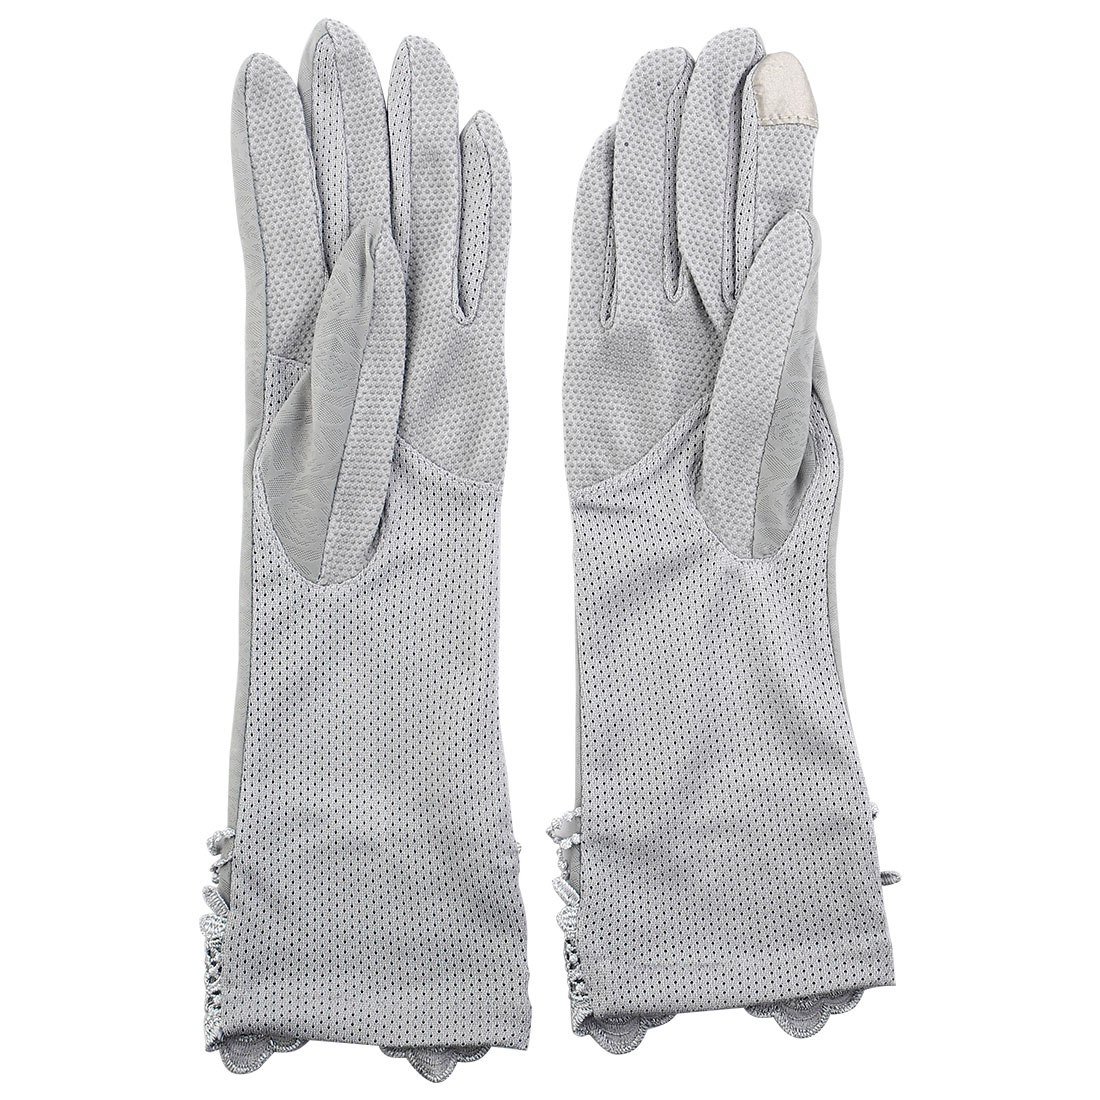 Outdoor Travel Driving Flower Butterfly Decor Full Finger Non-slip Sun Resistant Gloves Gray Pair for Women